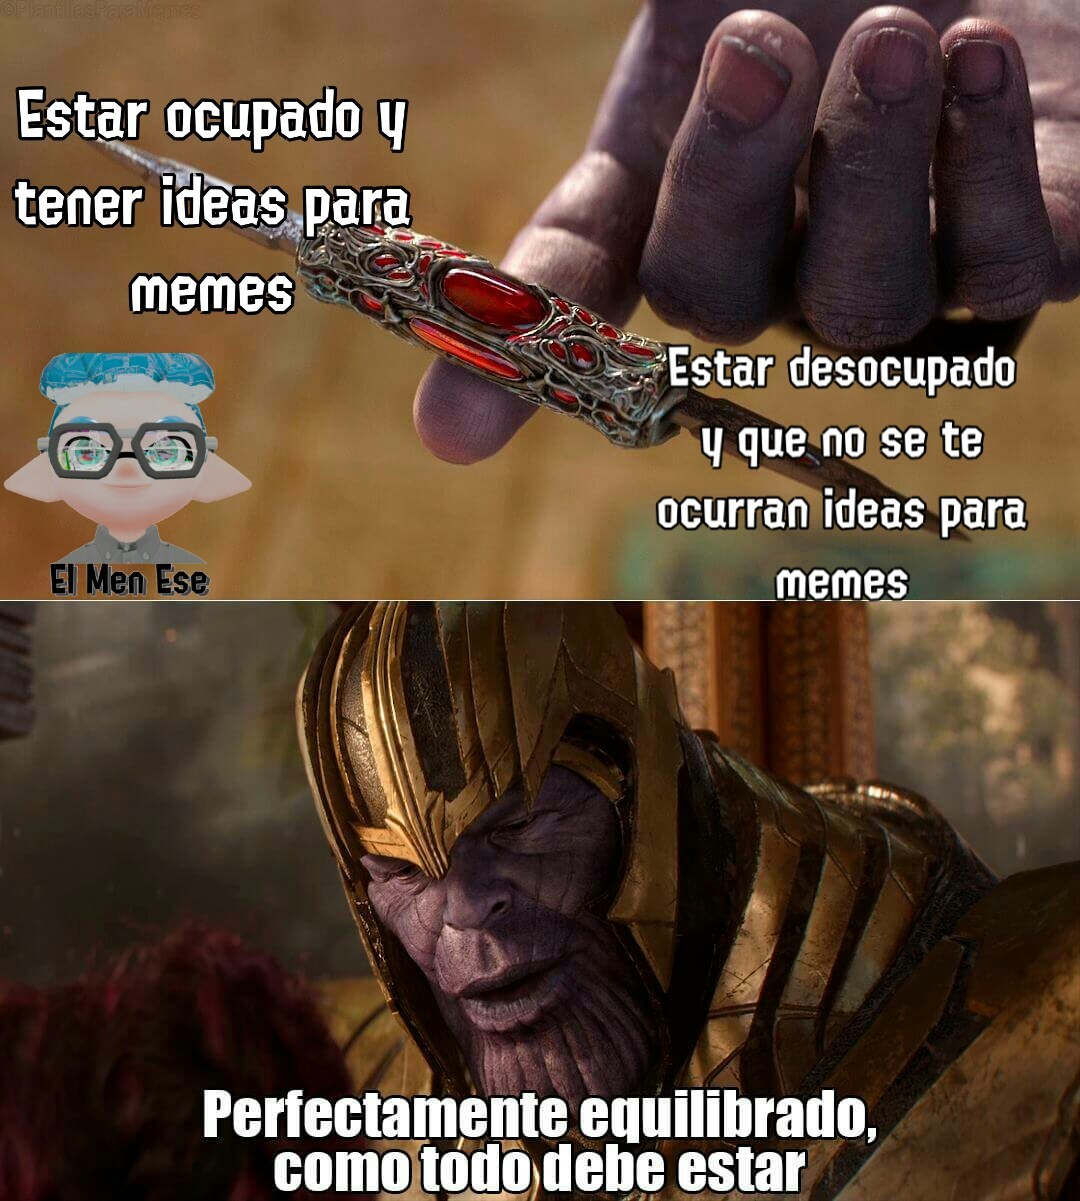 Error: Ideas para memes no encontradas